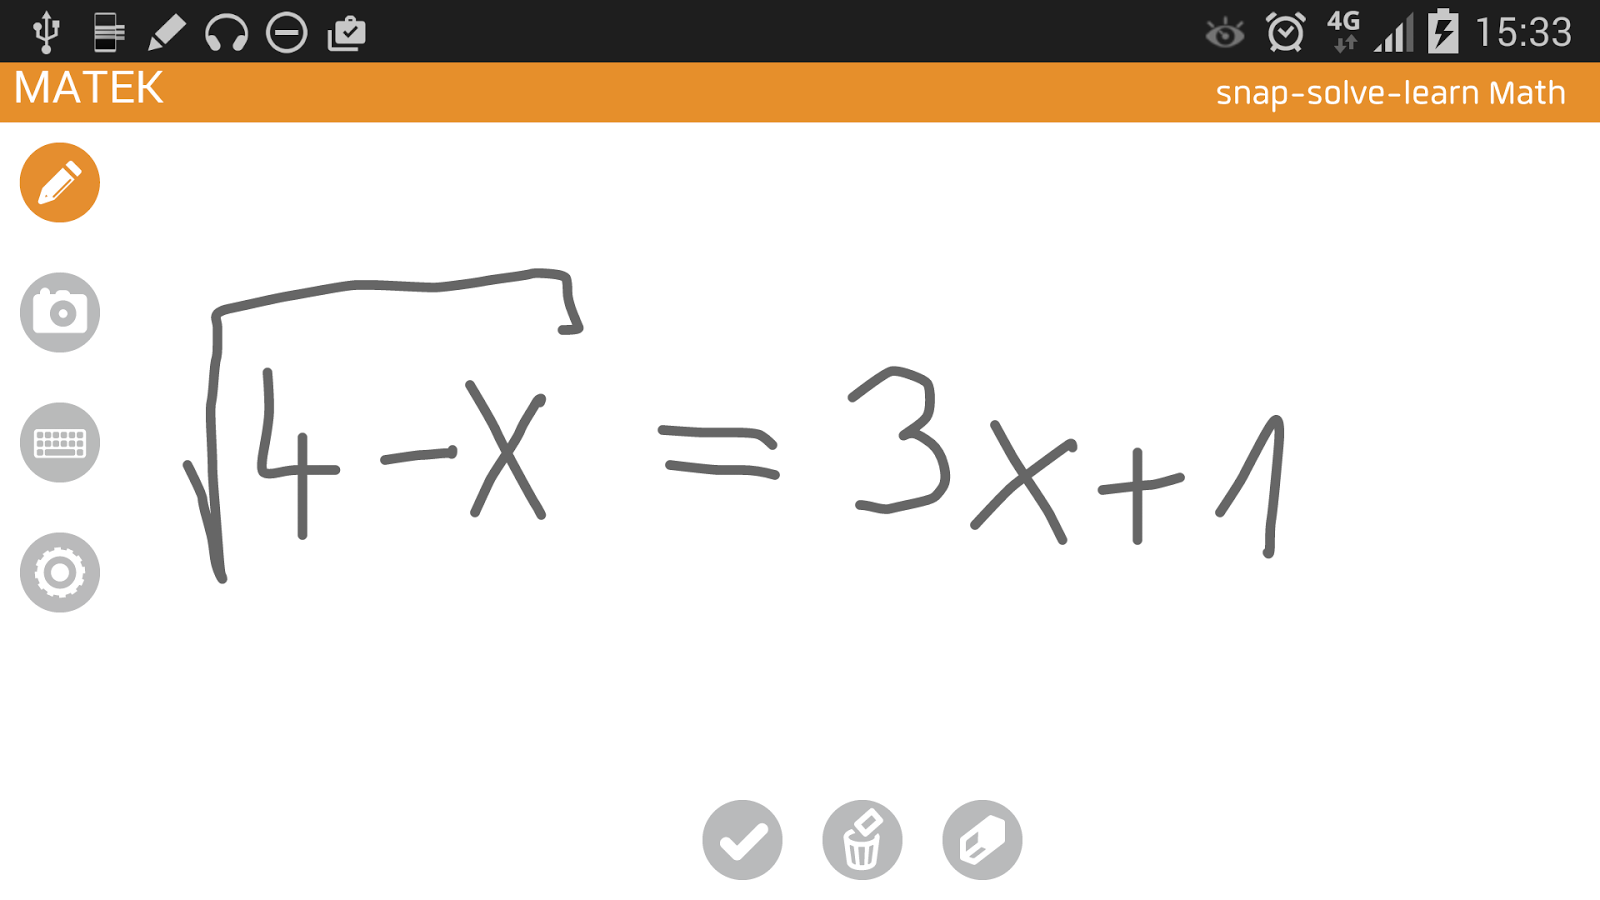 matek math camera solver android apps on google play matek math camera solver screenshot